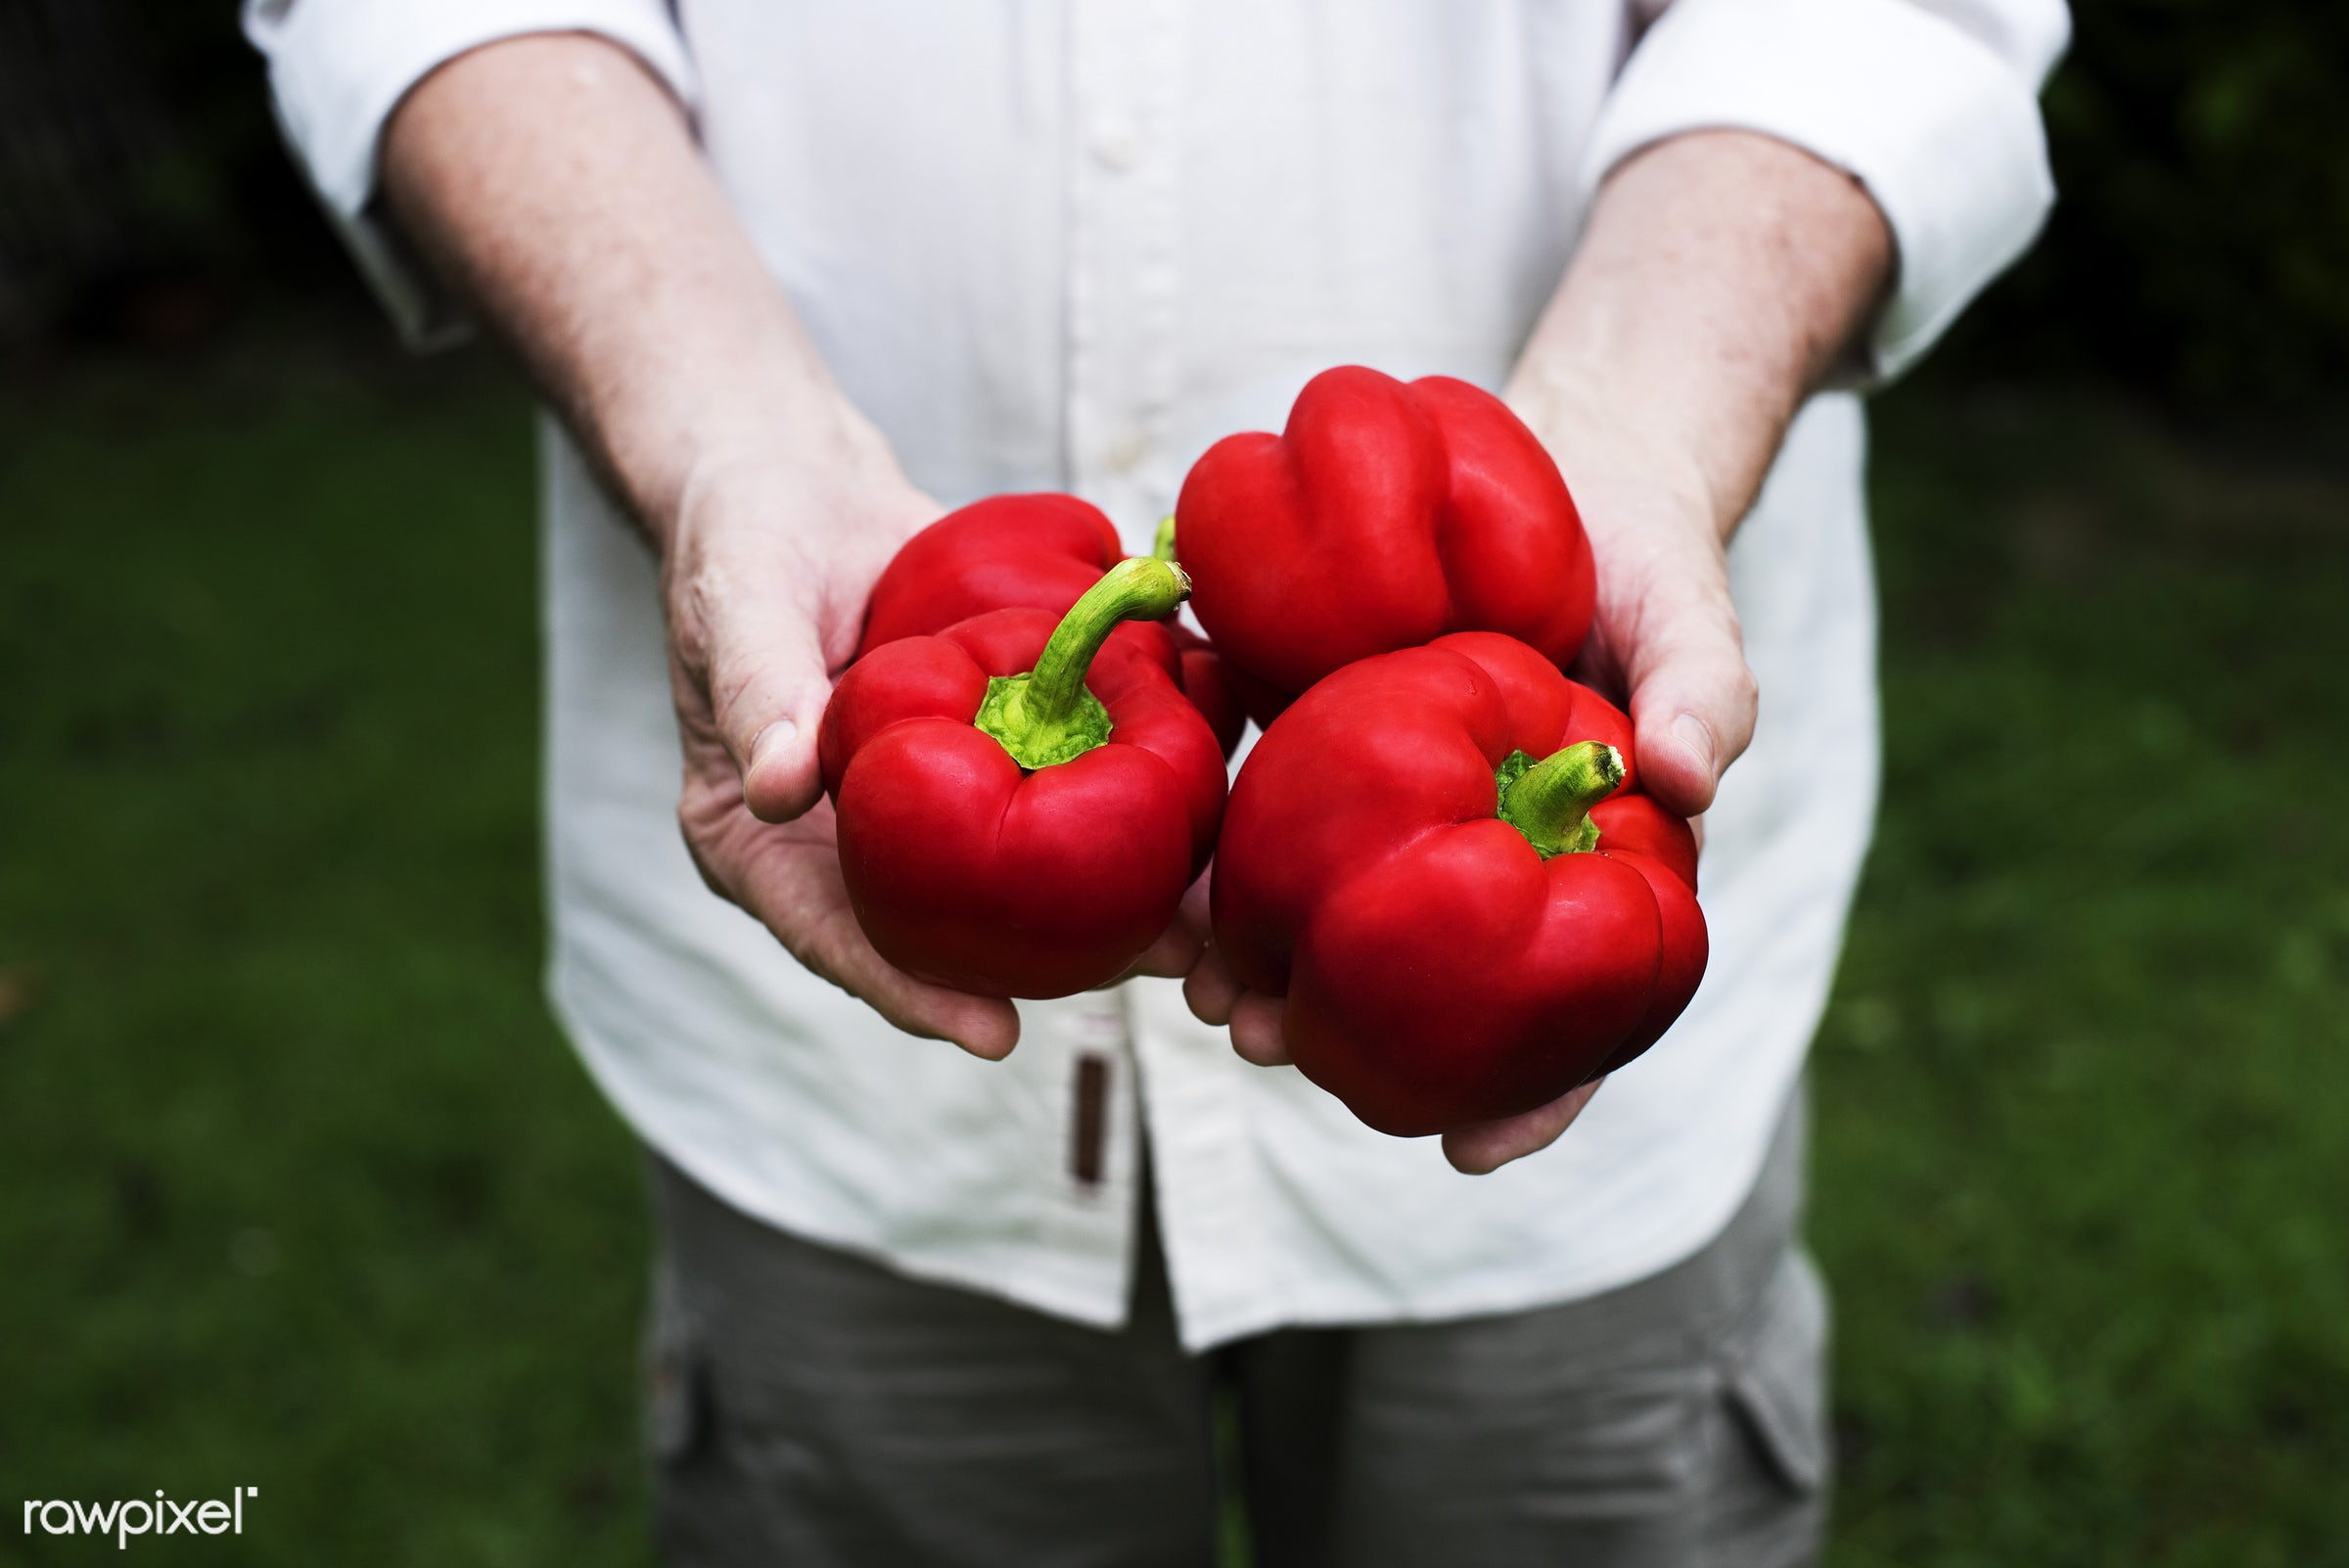 plant, raw, cuisine, bell pepper, crop, hands, fresh, ingredient, cultivation, pick, agriculture, farming, product, organic...